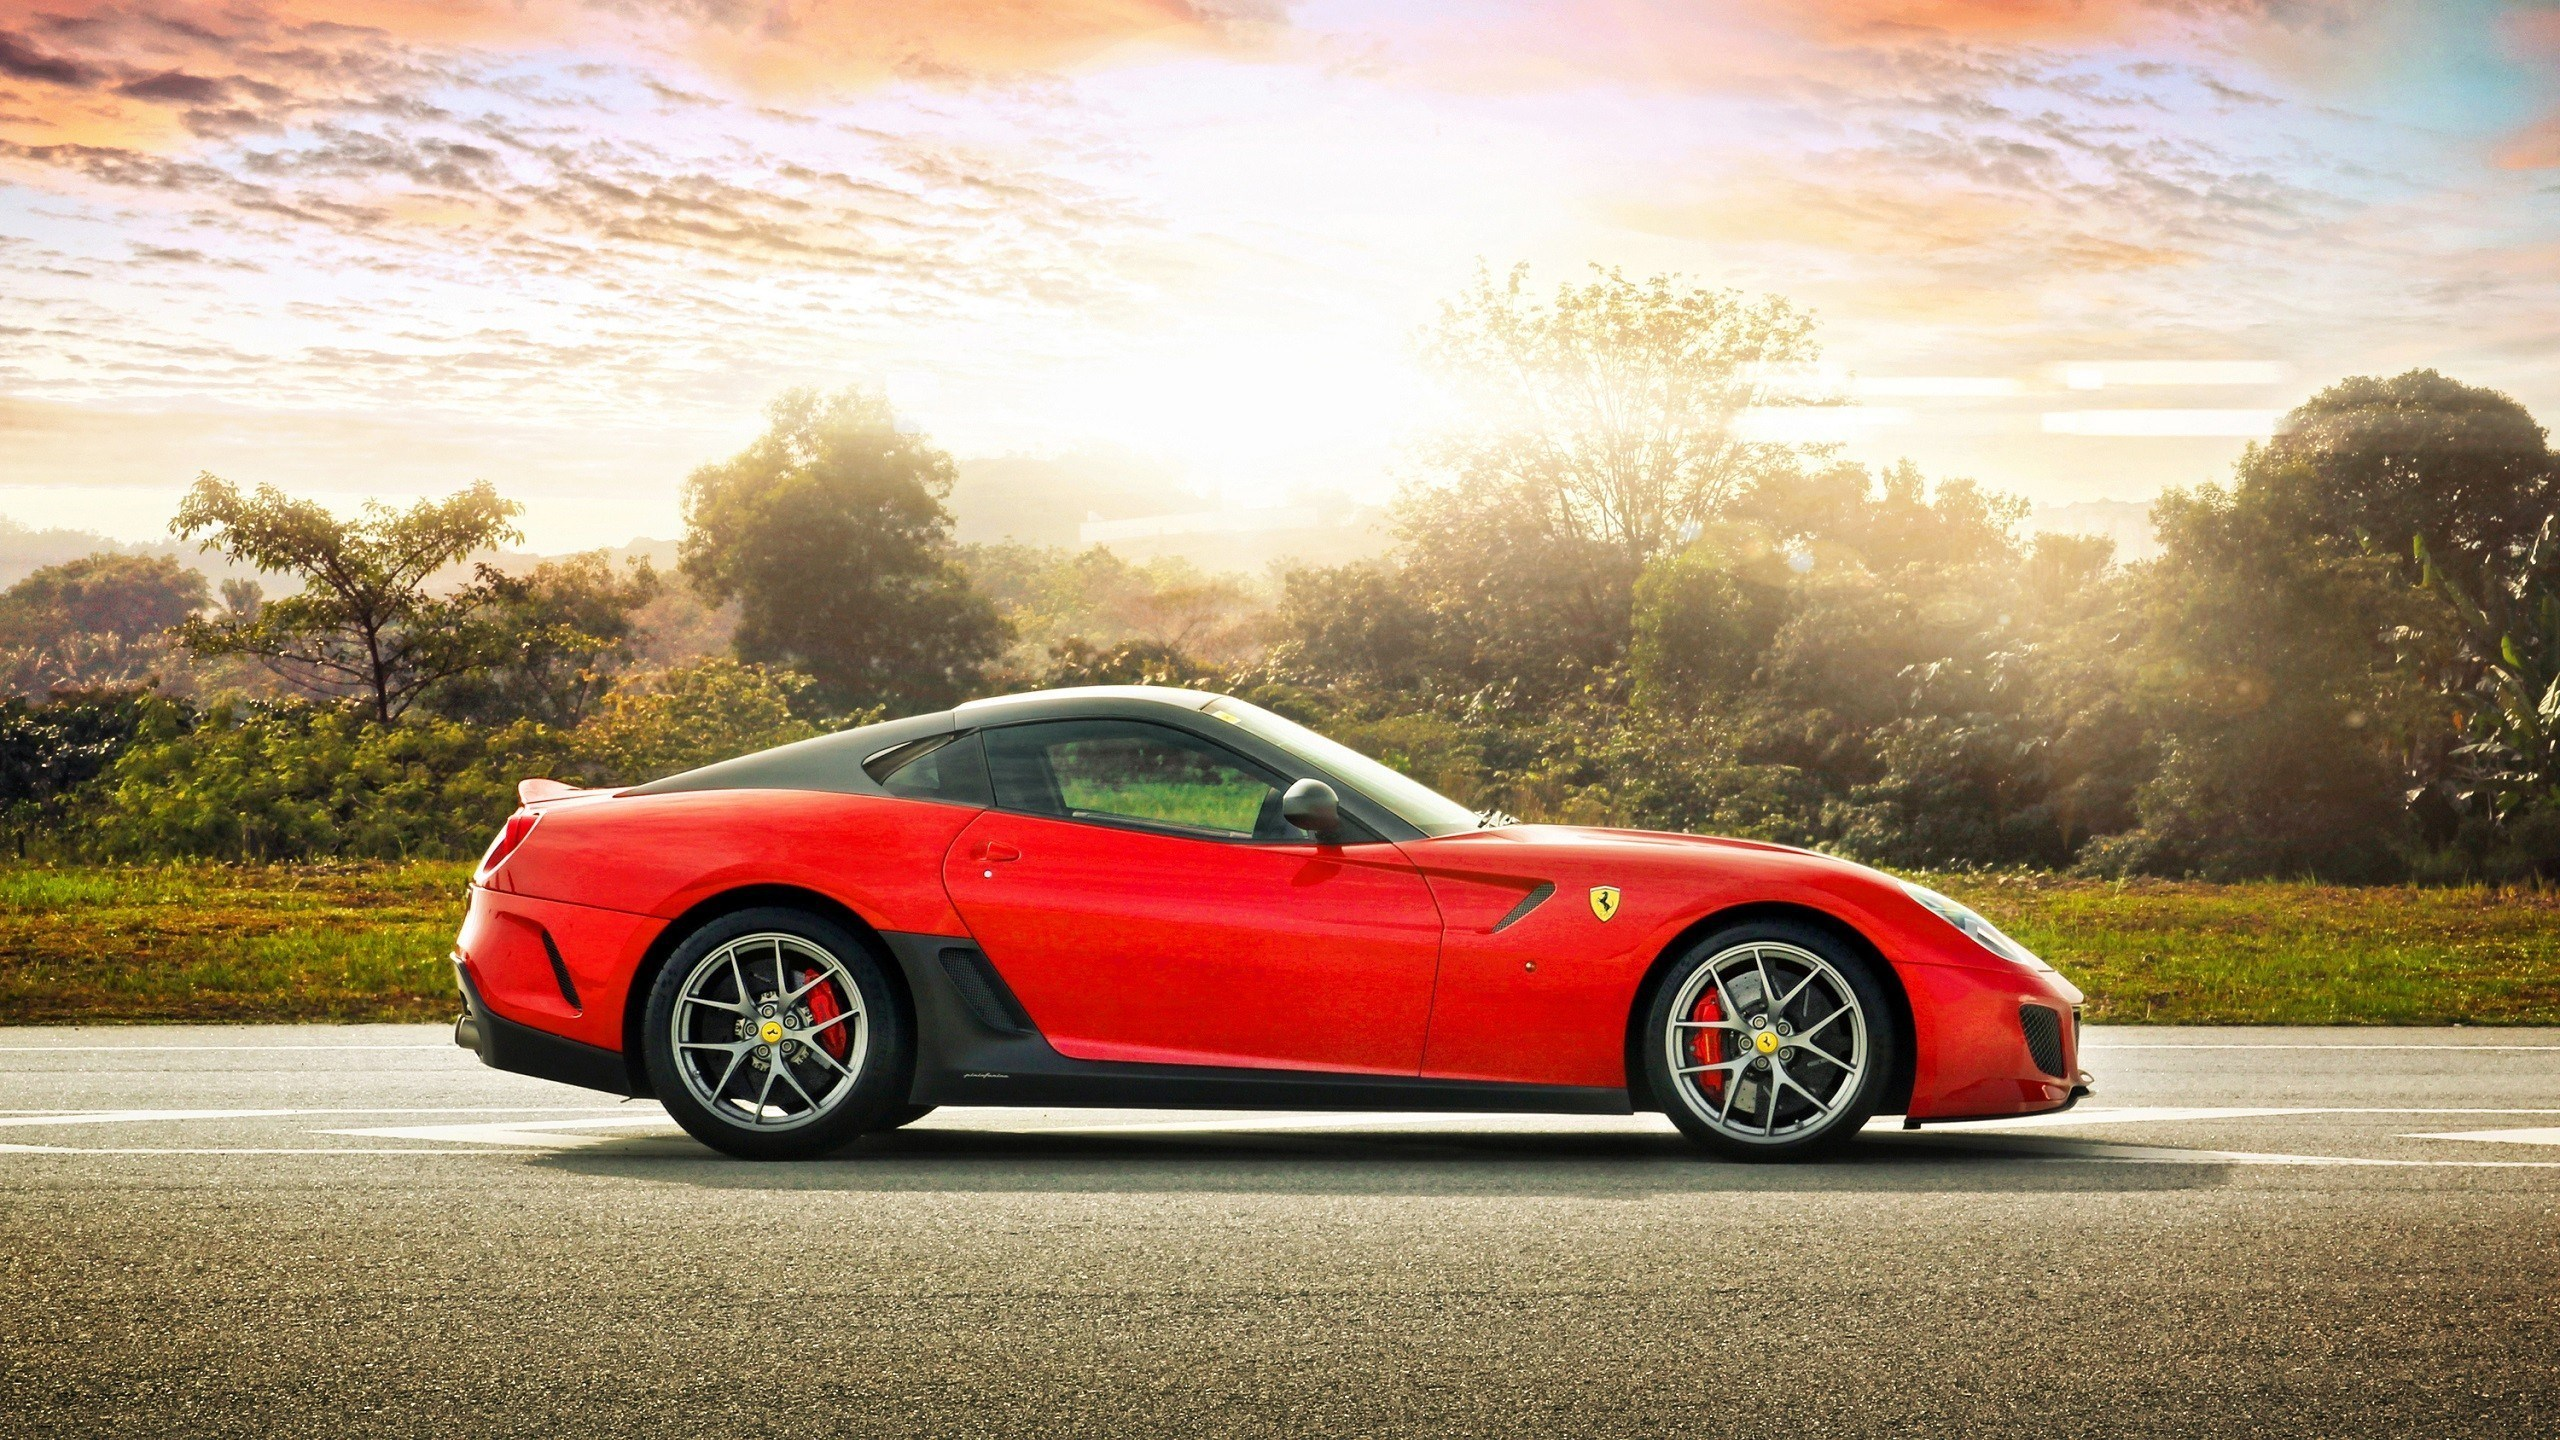 Fantastic Ferrari 599 Wallpaper